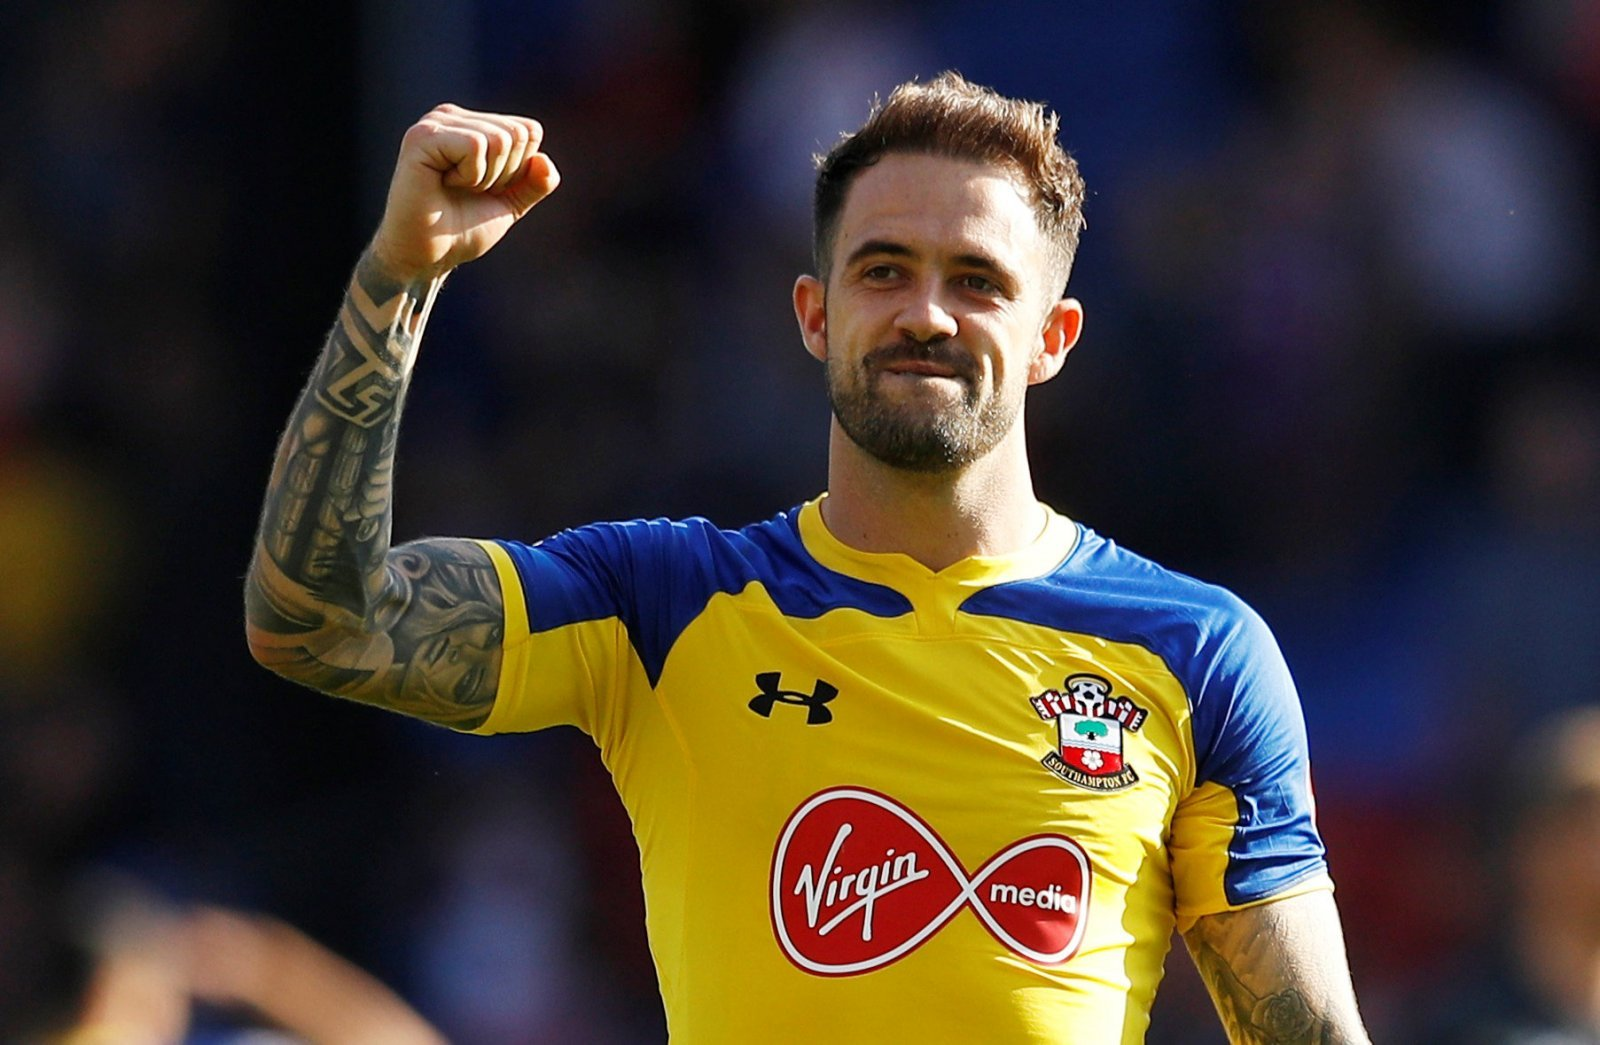 Danny Ings is going to be vital for Southampton this season